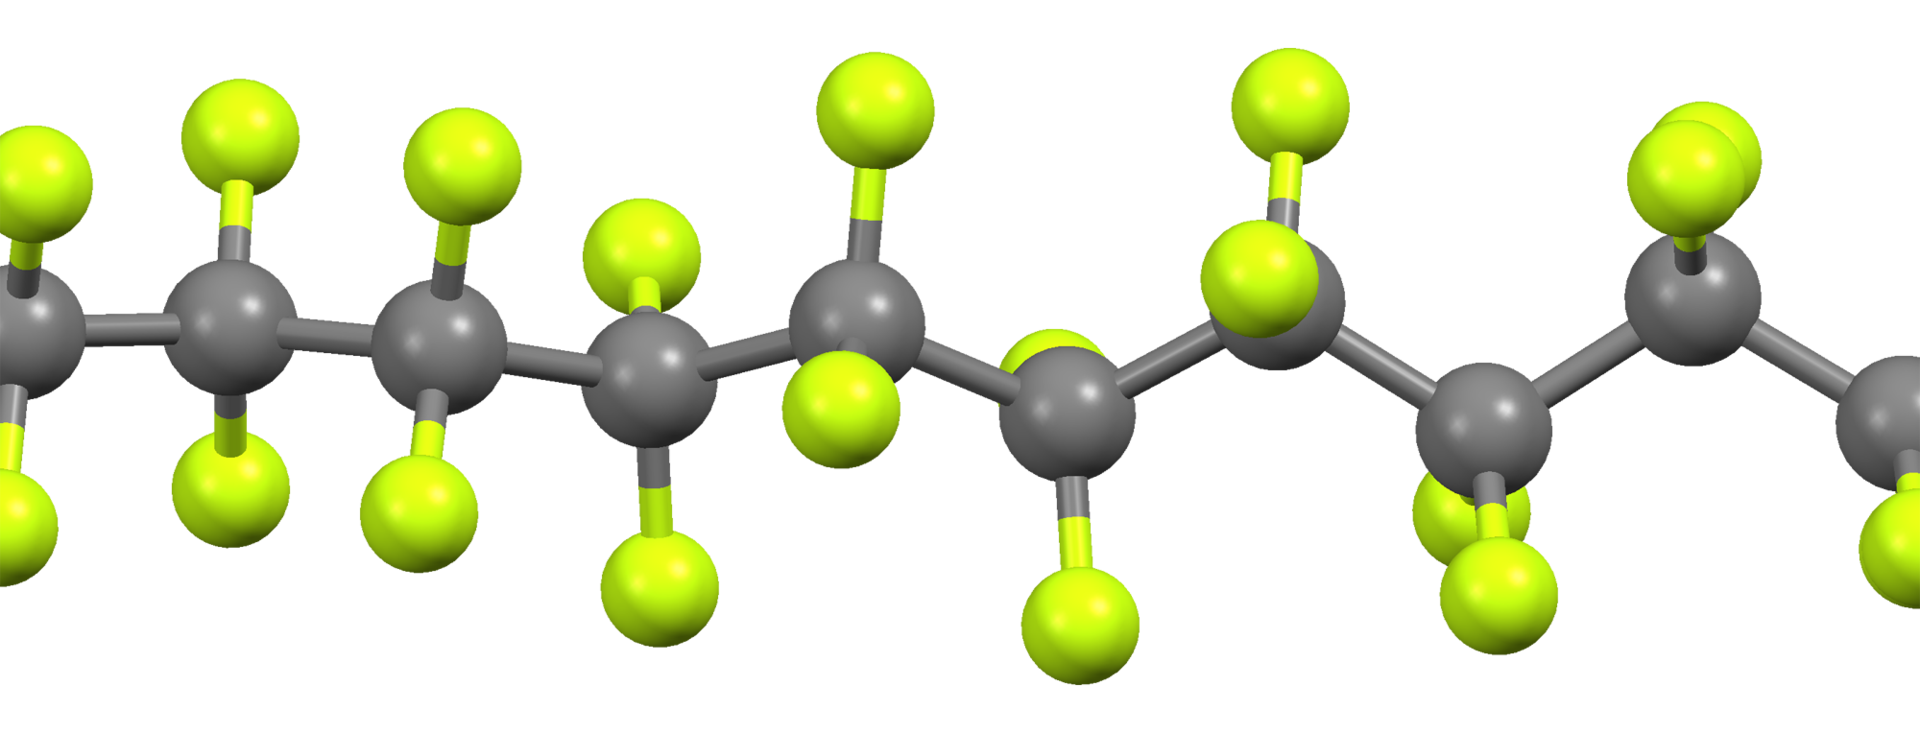 Perfluorodecyl-chain-from-xtal-Mercury-3D-balls